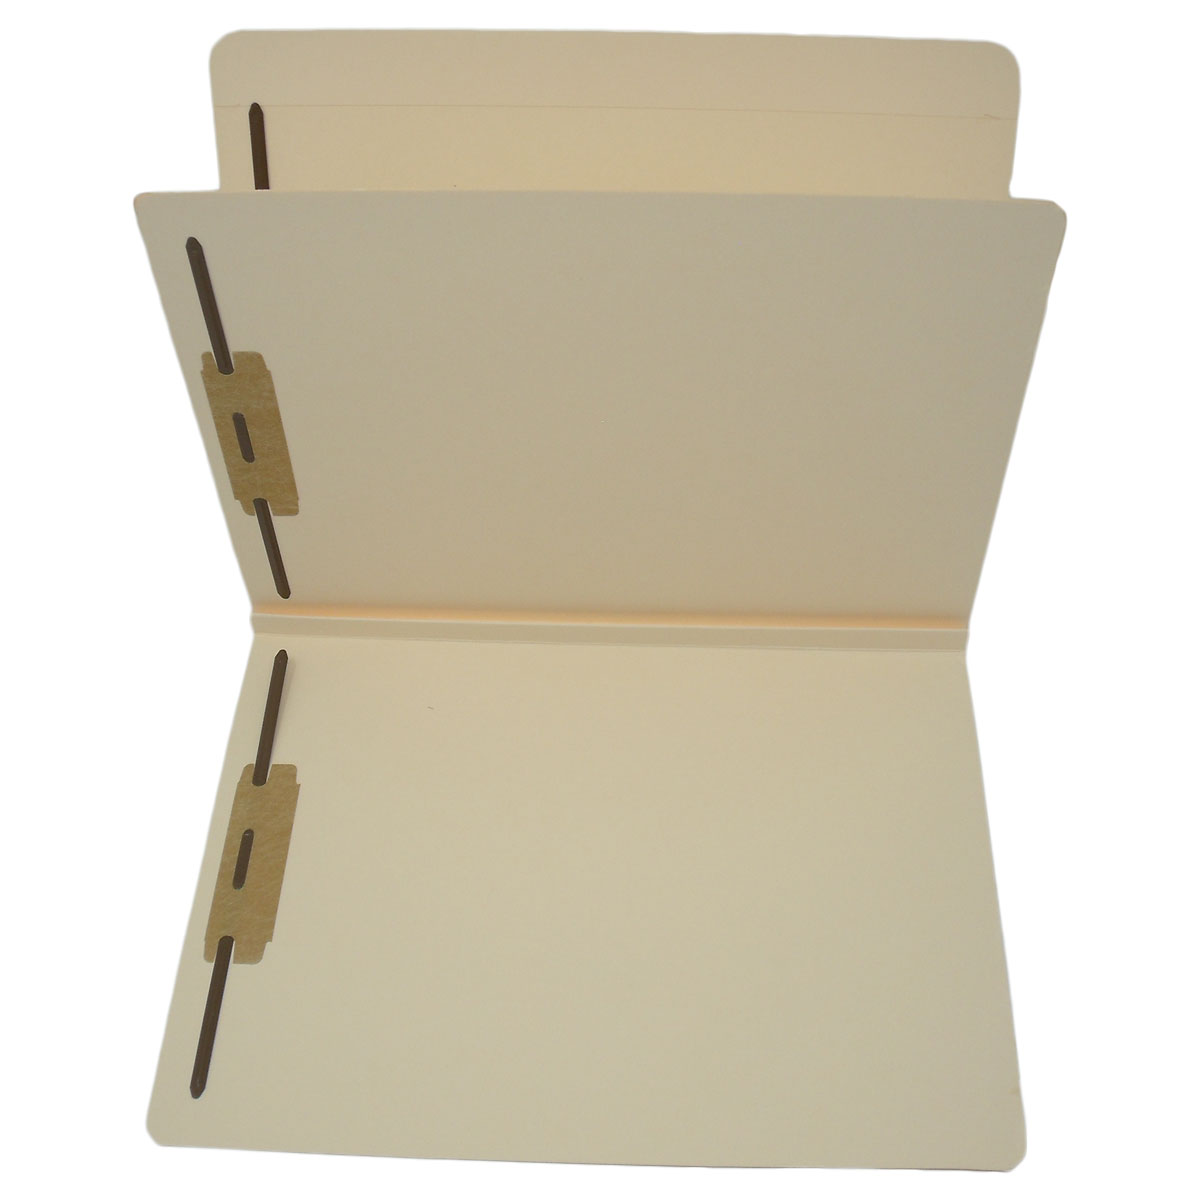 S-9089 - 14 Pt. Manila Classification Folders, Full Cut Top Tab, Letter Size, 1 Divider (Box of 25)